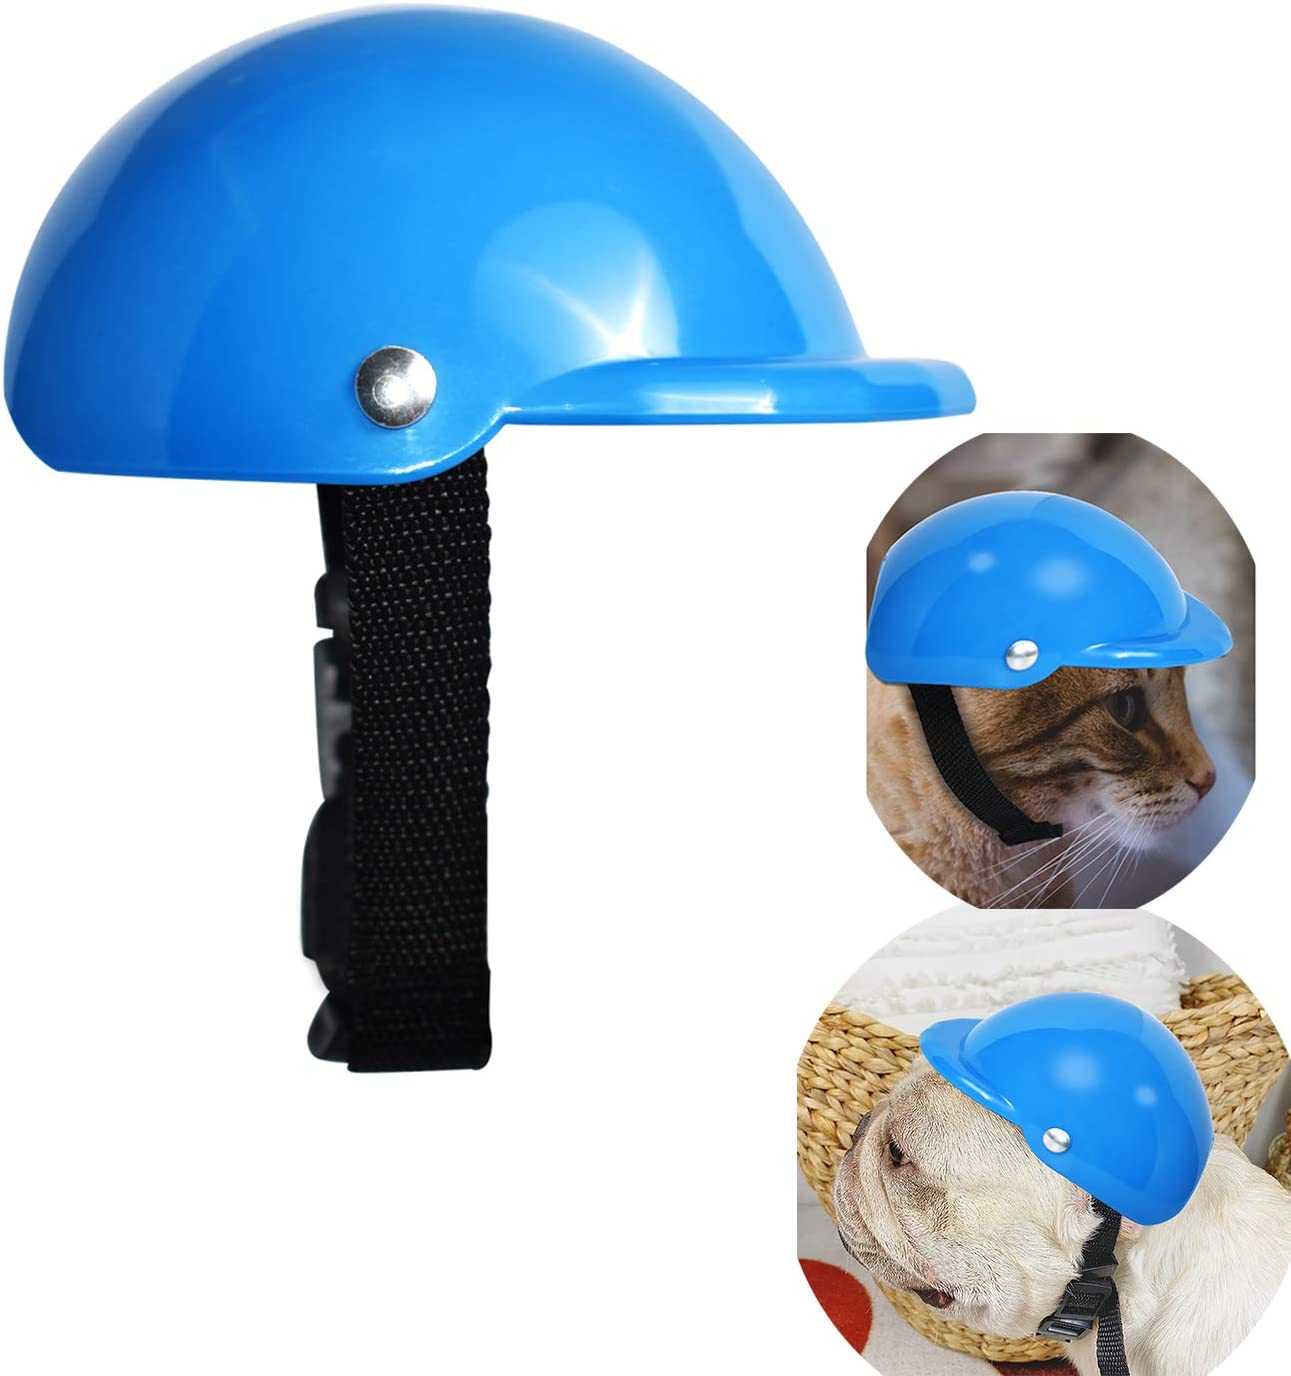 S, White GUGELIVES Pet Dog Helmet Doggie Hardhat for Puppy Chihuahua Blind Dogs Ridding Motorcycles Bike Outdoor Activities to Protect Head Sunproof Rainproof Pet Supplies for Small Medium Big Dog Helmets